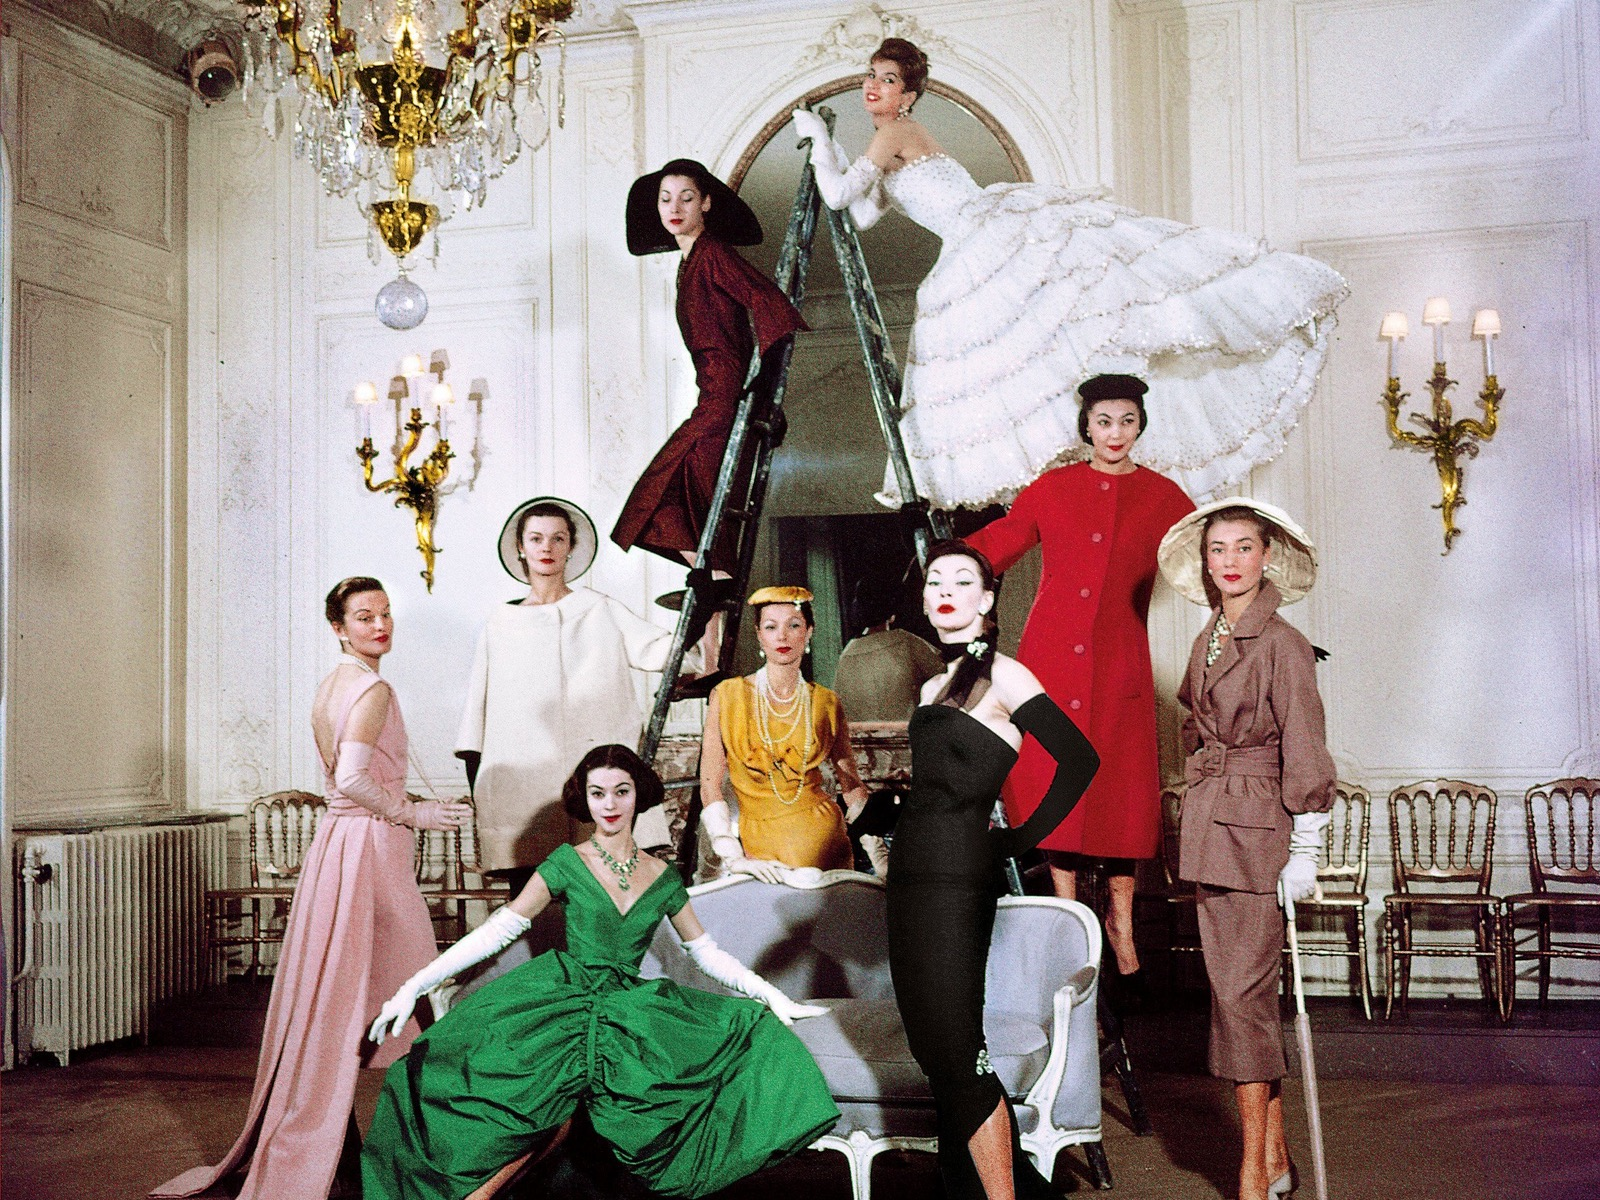 Christian Dior models in the salon of House of Dior's headquarters